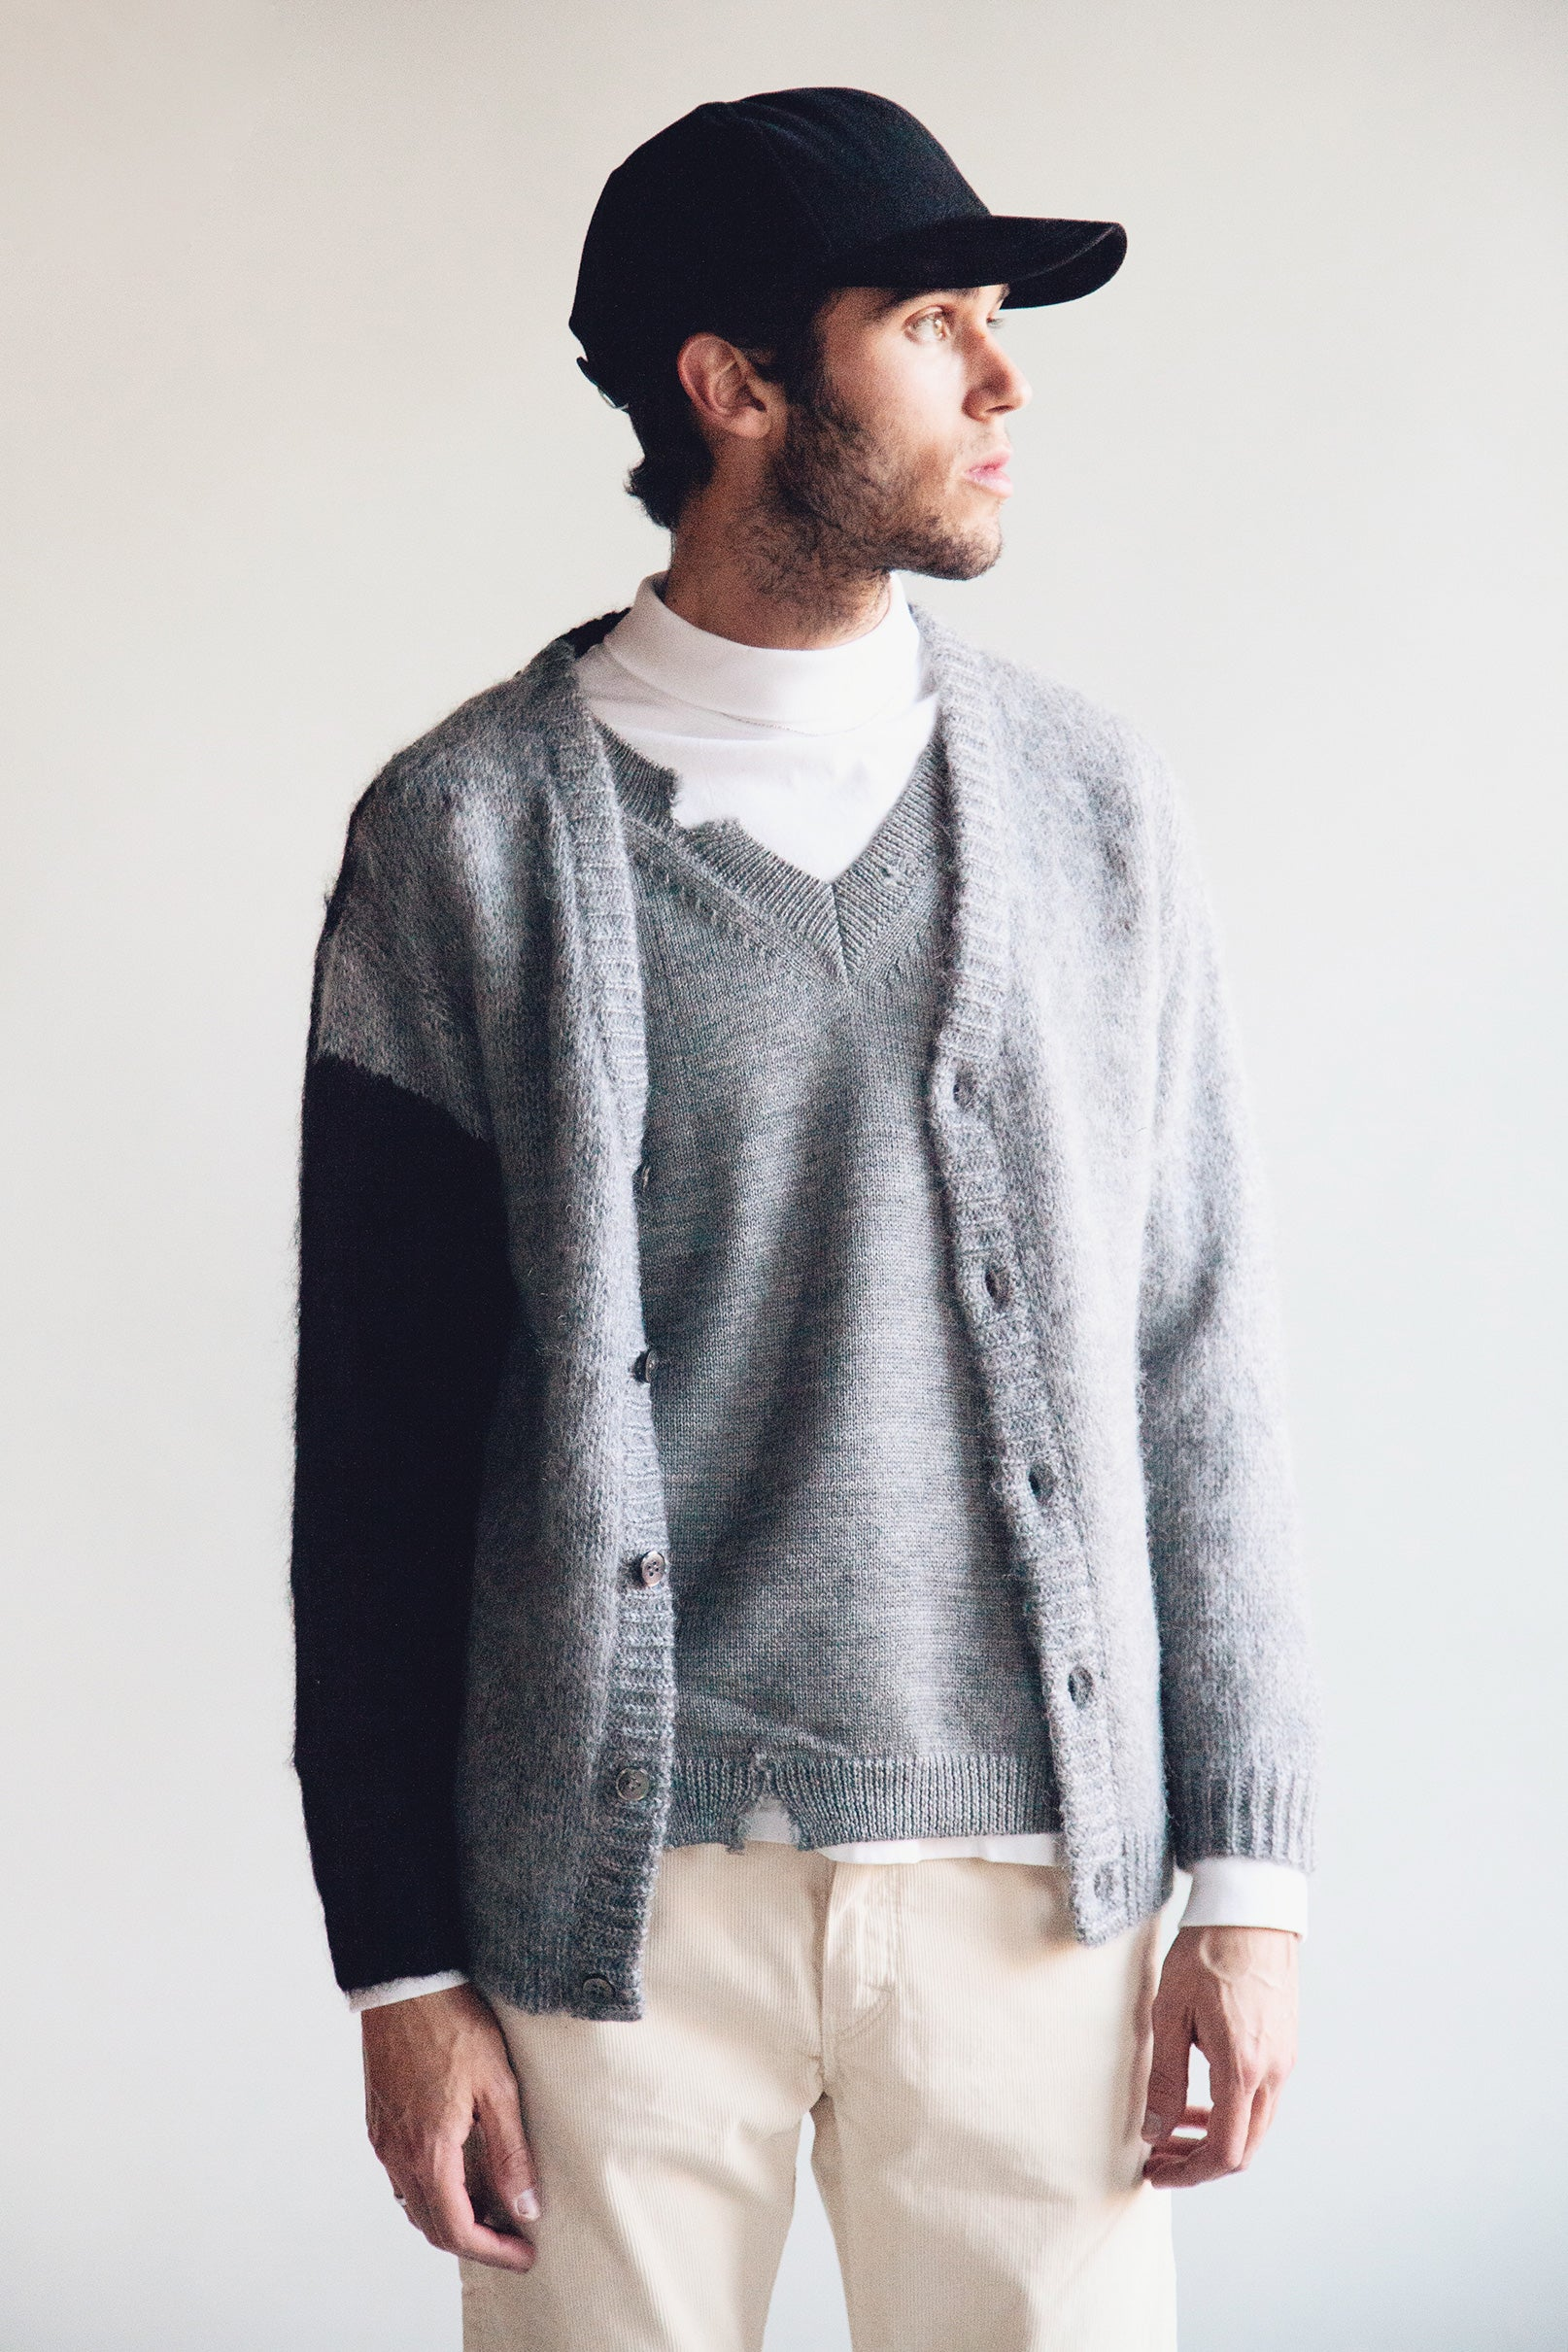 noma t.d. Hand Knitted Mohair Cardigan - Black/Gray